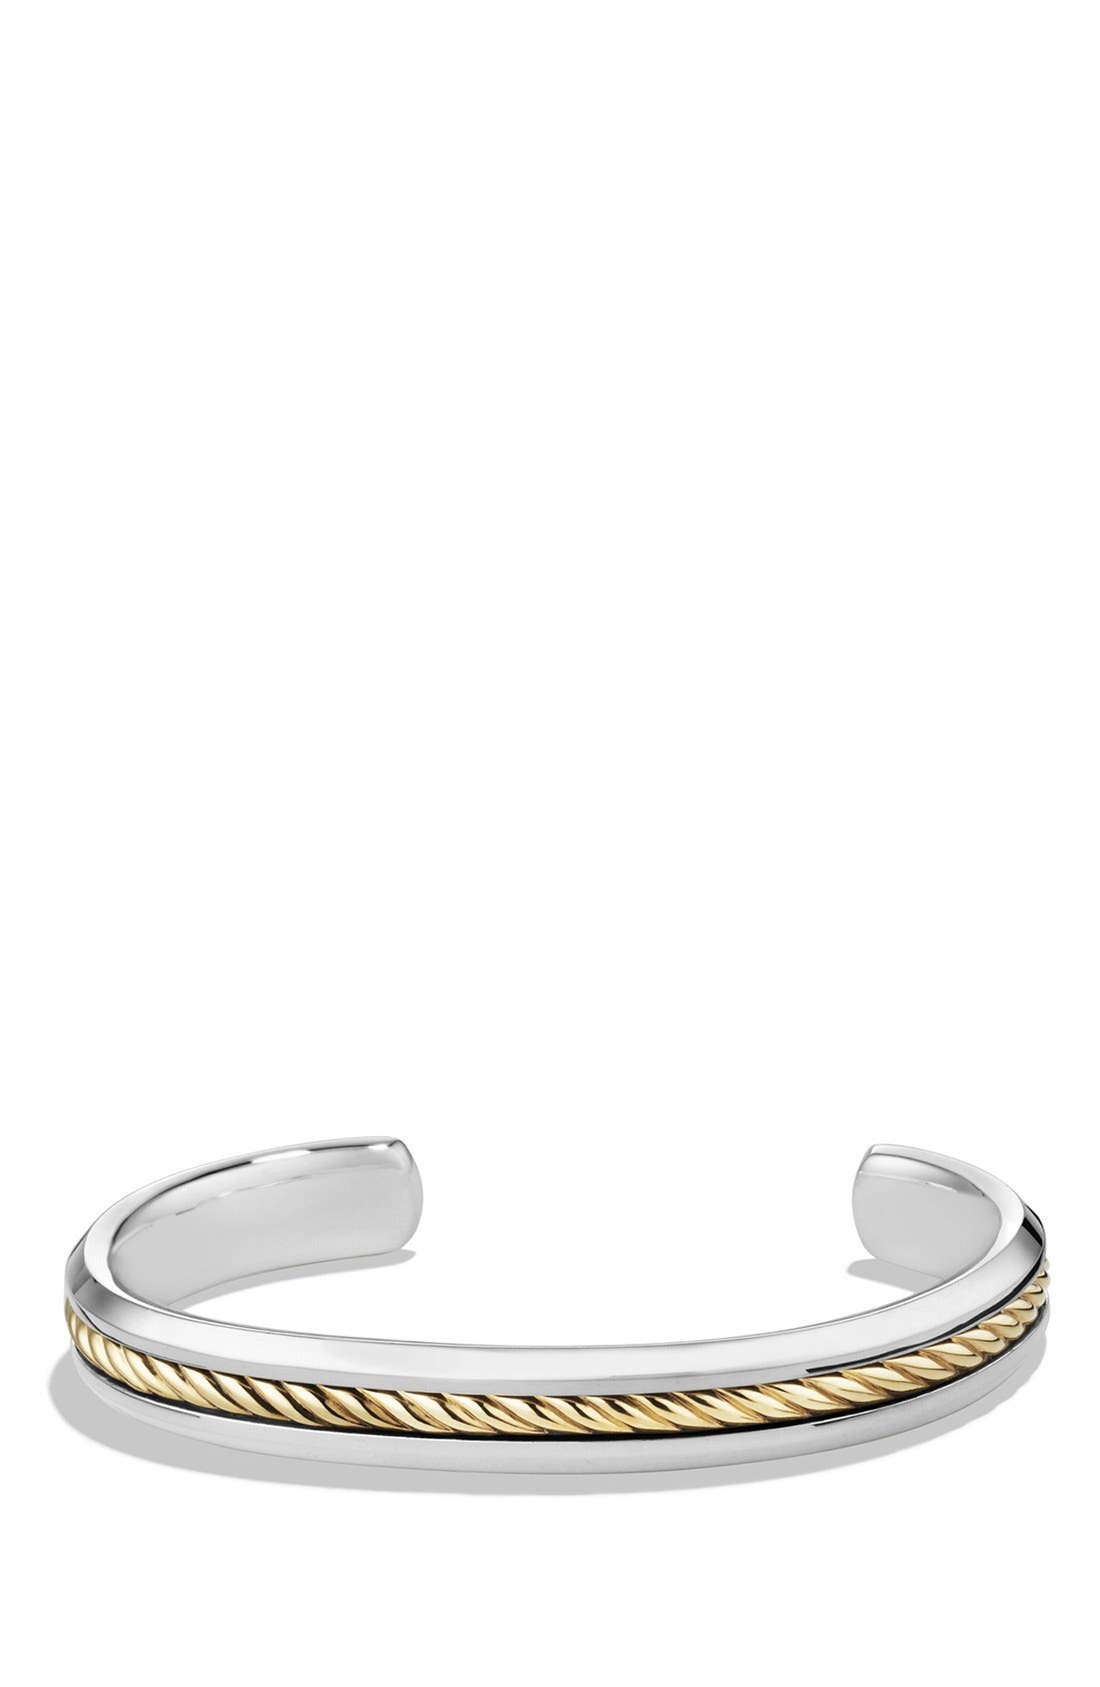 Alternate Image 1 Selected - David Yurman 'Cable Classics' Cuff Bracelet with Gold